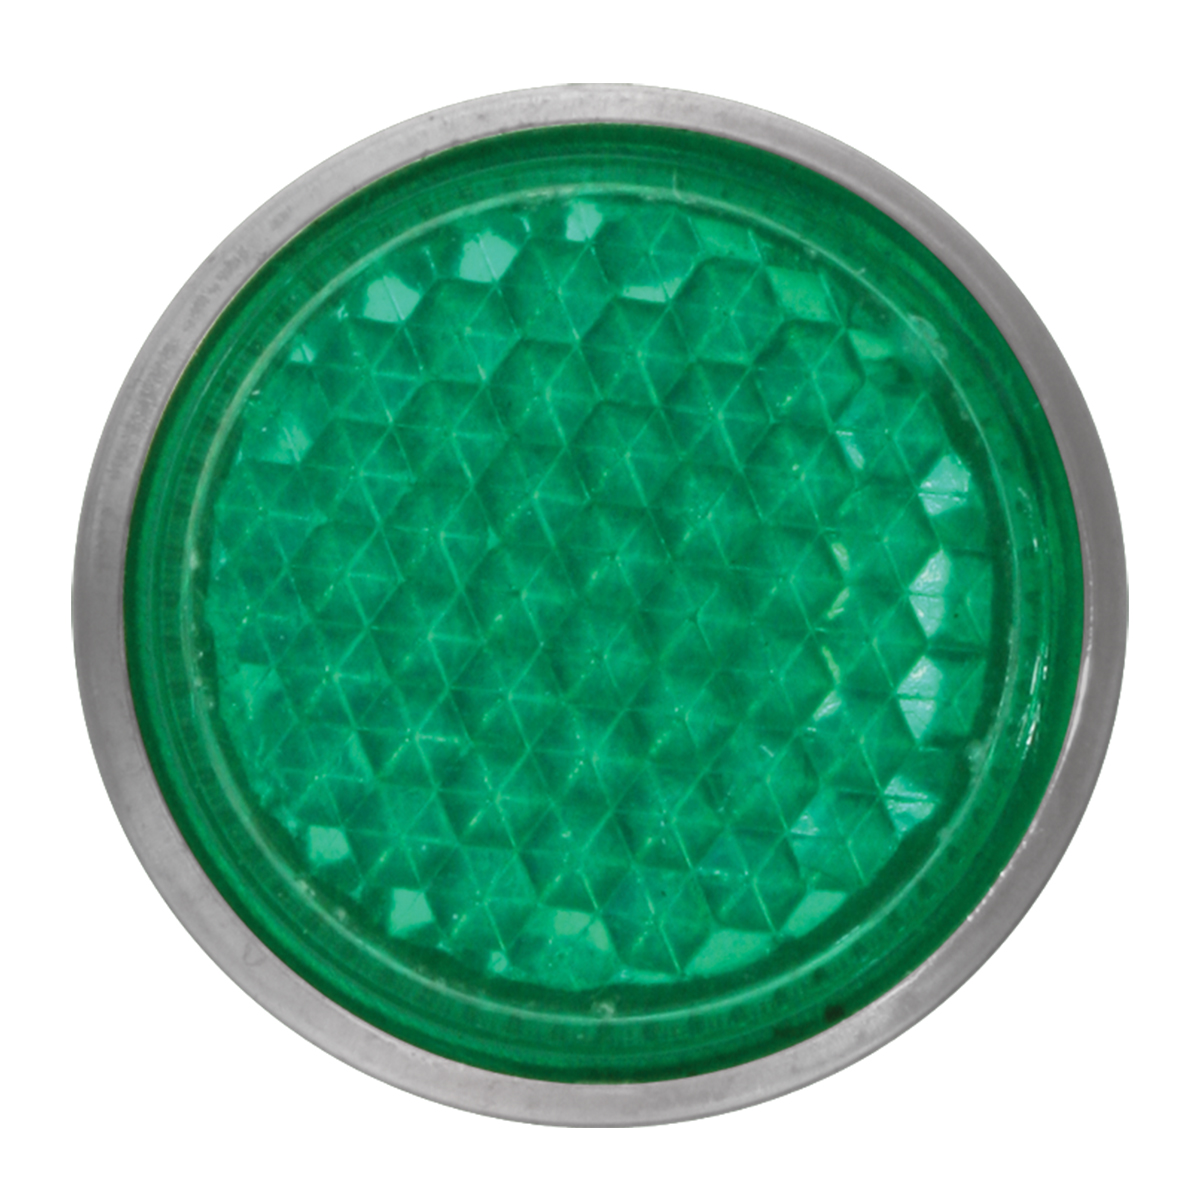 "Green 5/8"" Round Screw Type Mini Reflector"